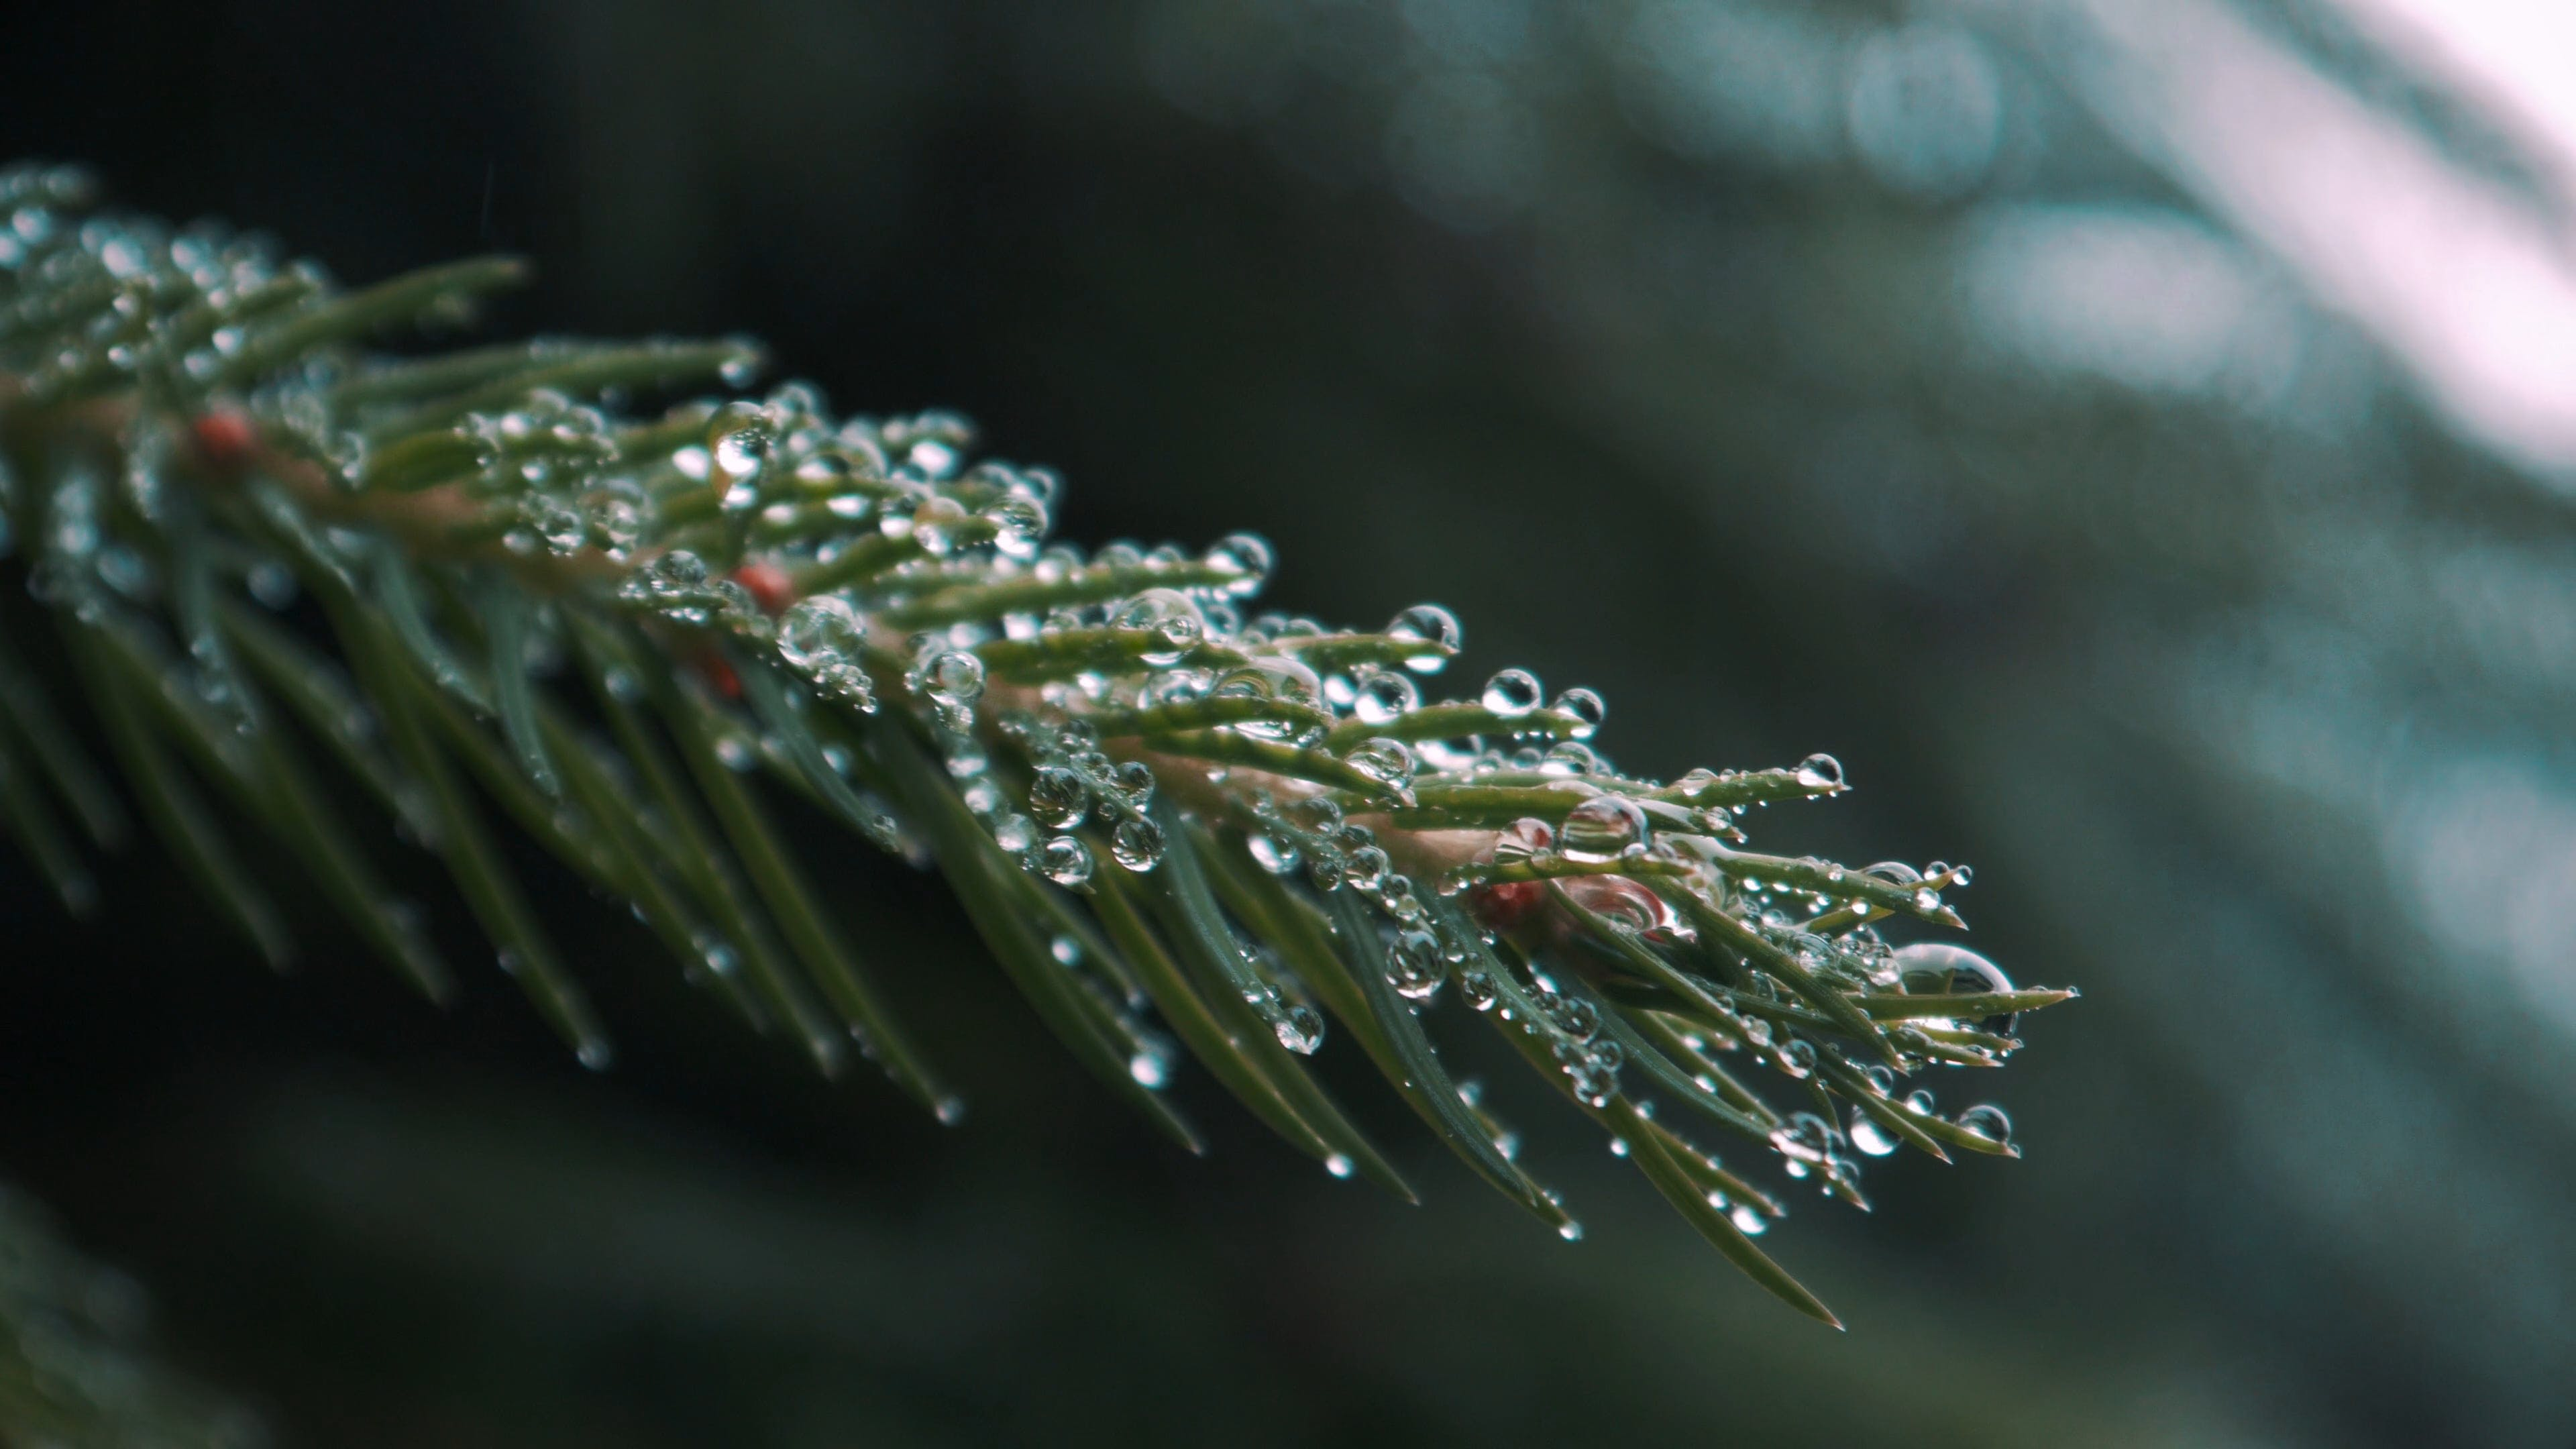 Close-Up View Of Pine Leaves With Water Droplets